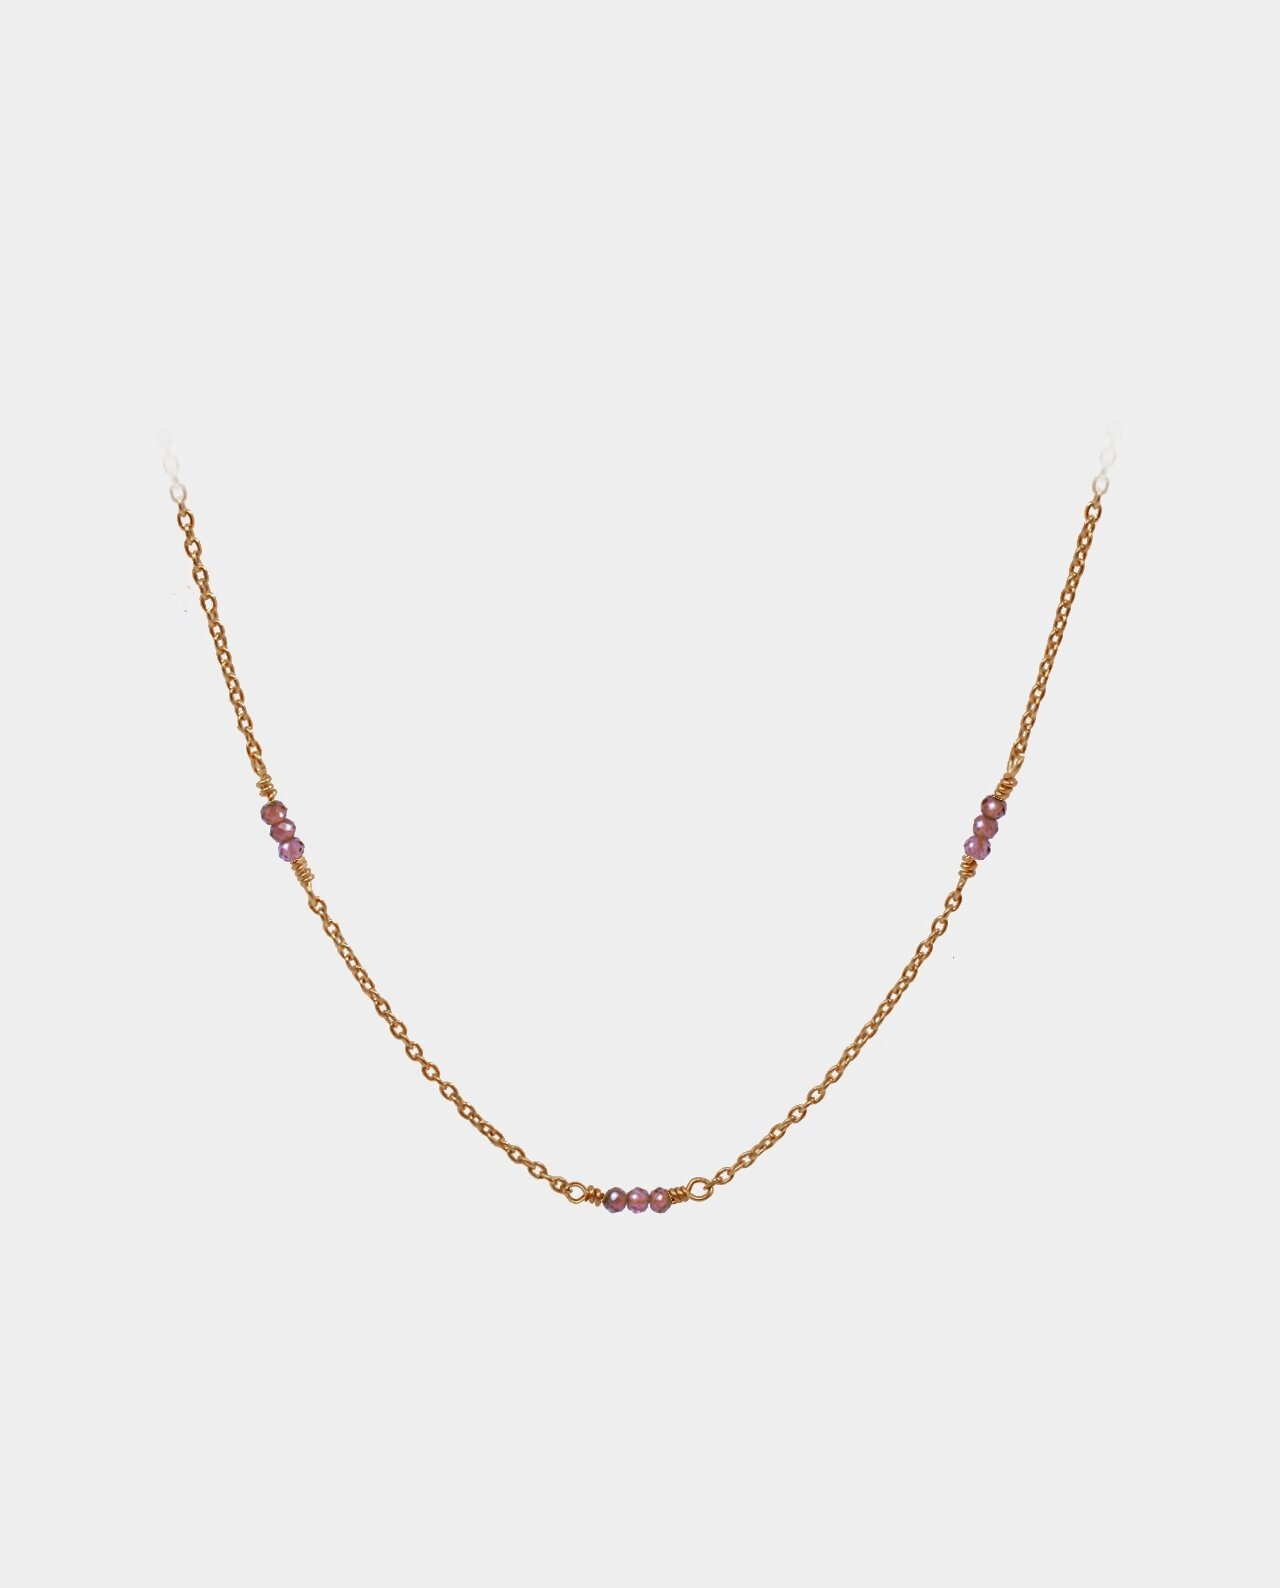 Handmade necklace with garnets made to lie in a fine line around your neck with chain of sterling silver gold-plated with 18 carat gold without nickel